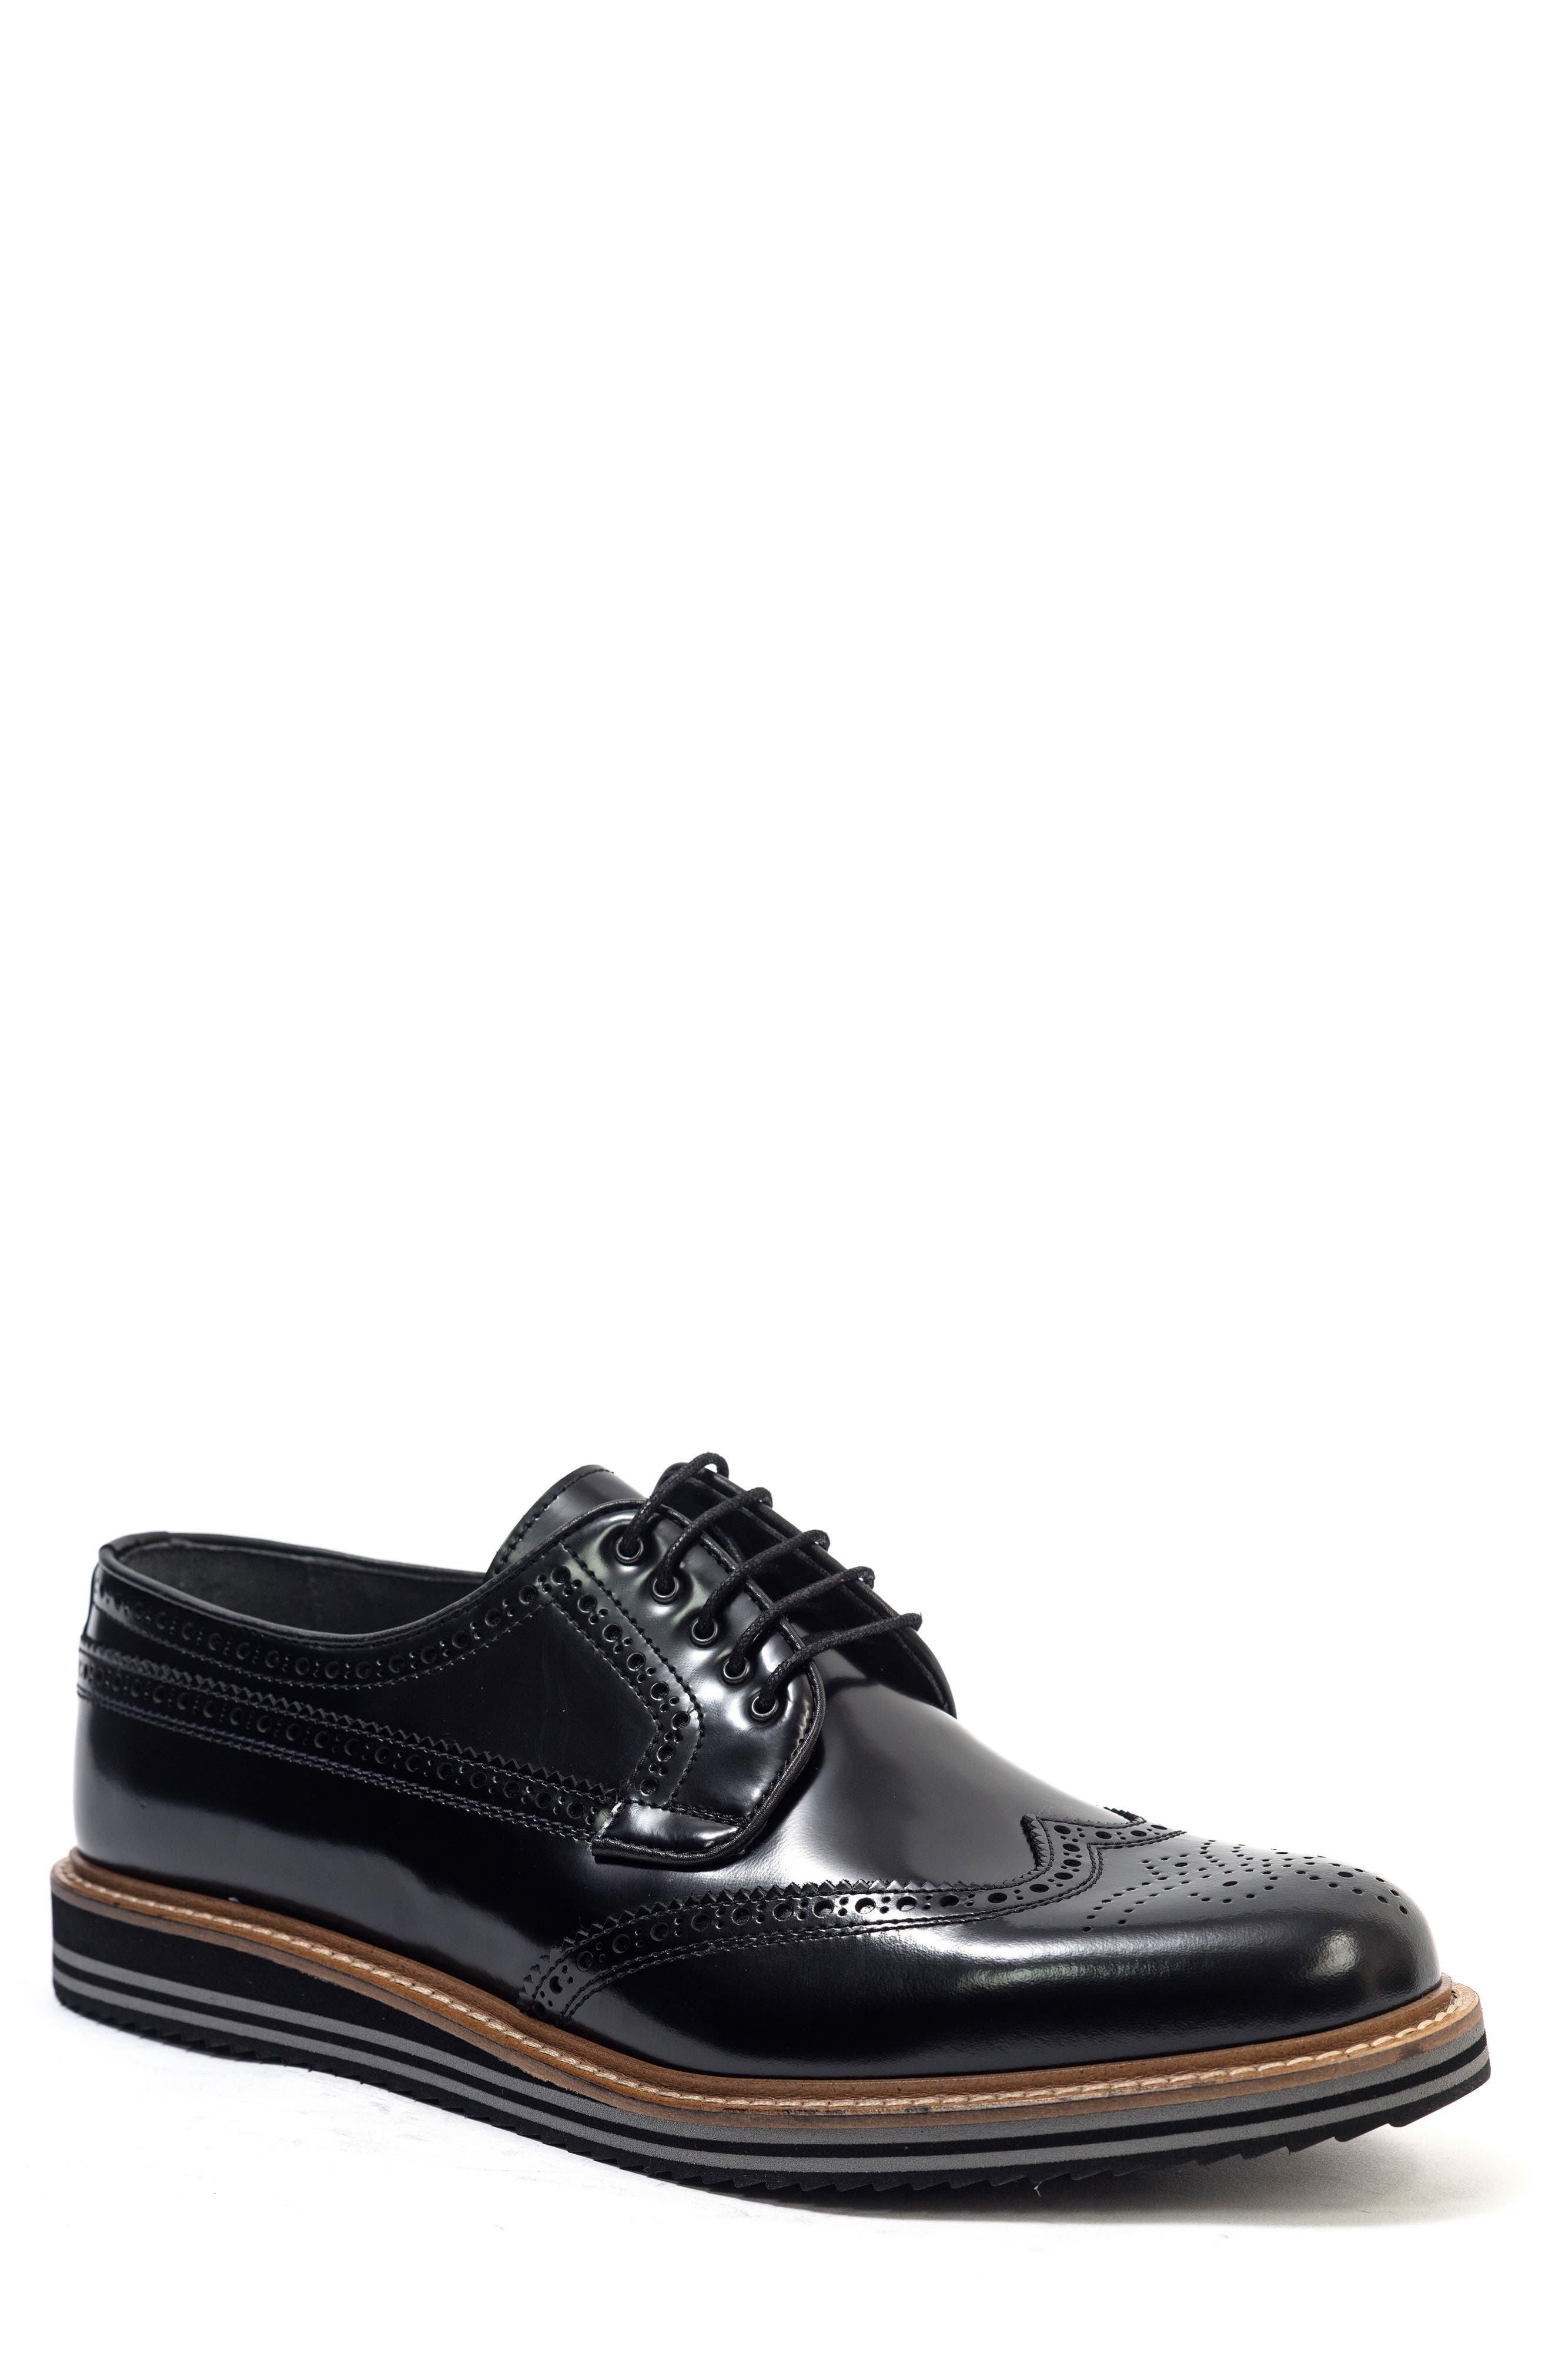 Doc Sandwich Sole Wingtip Oxford,                             Main thumbnail 1, color,                             001